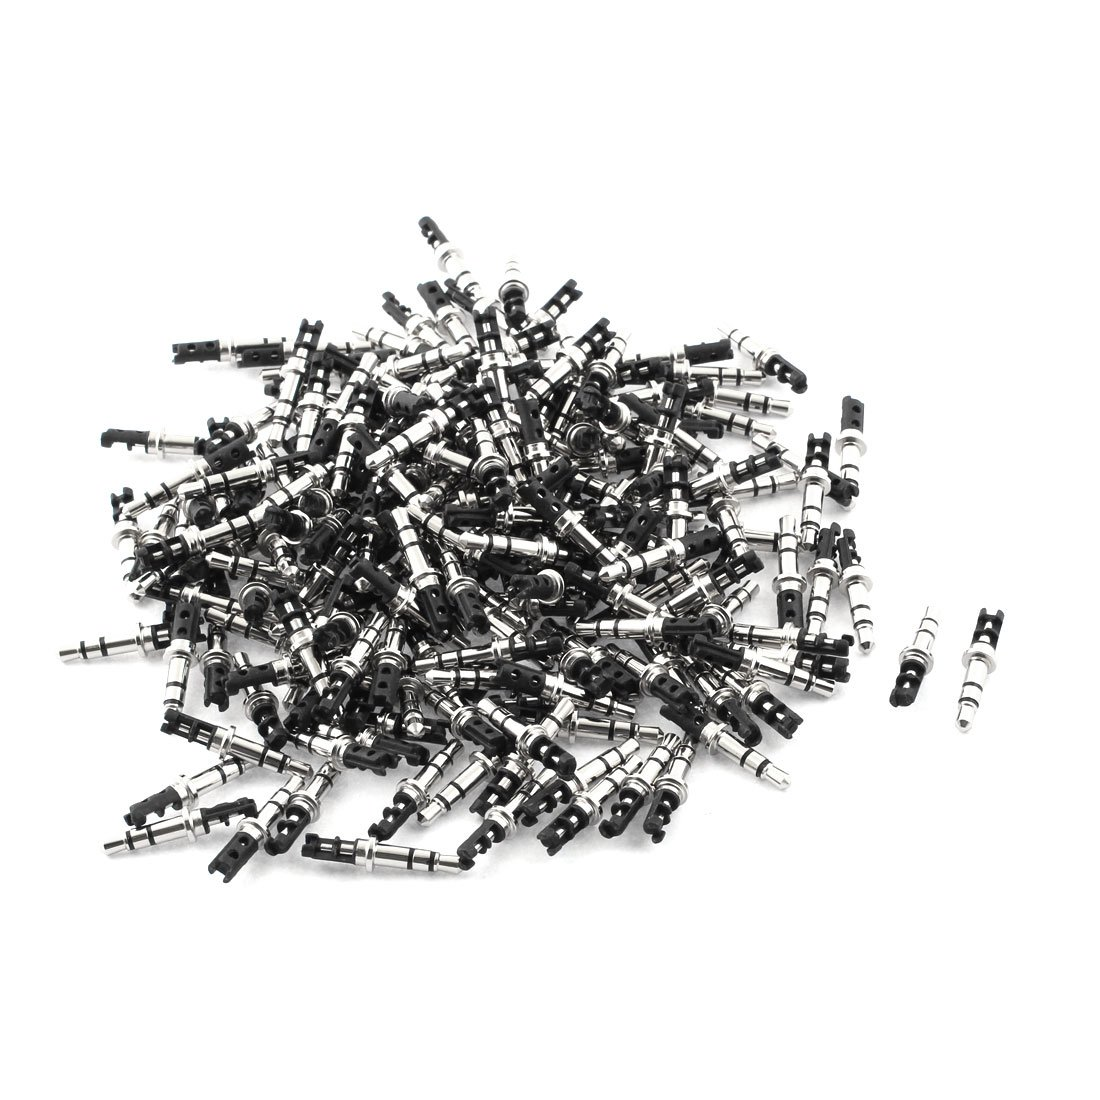 Uxcell 35mm Stereo Male Repair Audio Headphone Jack Solder Wiring Connector Black 200pcs A16012800ux1879